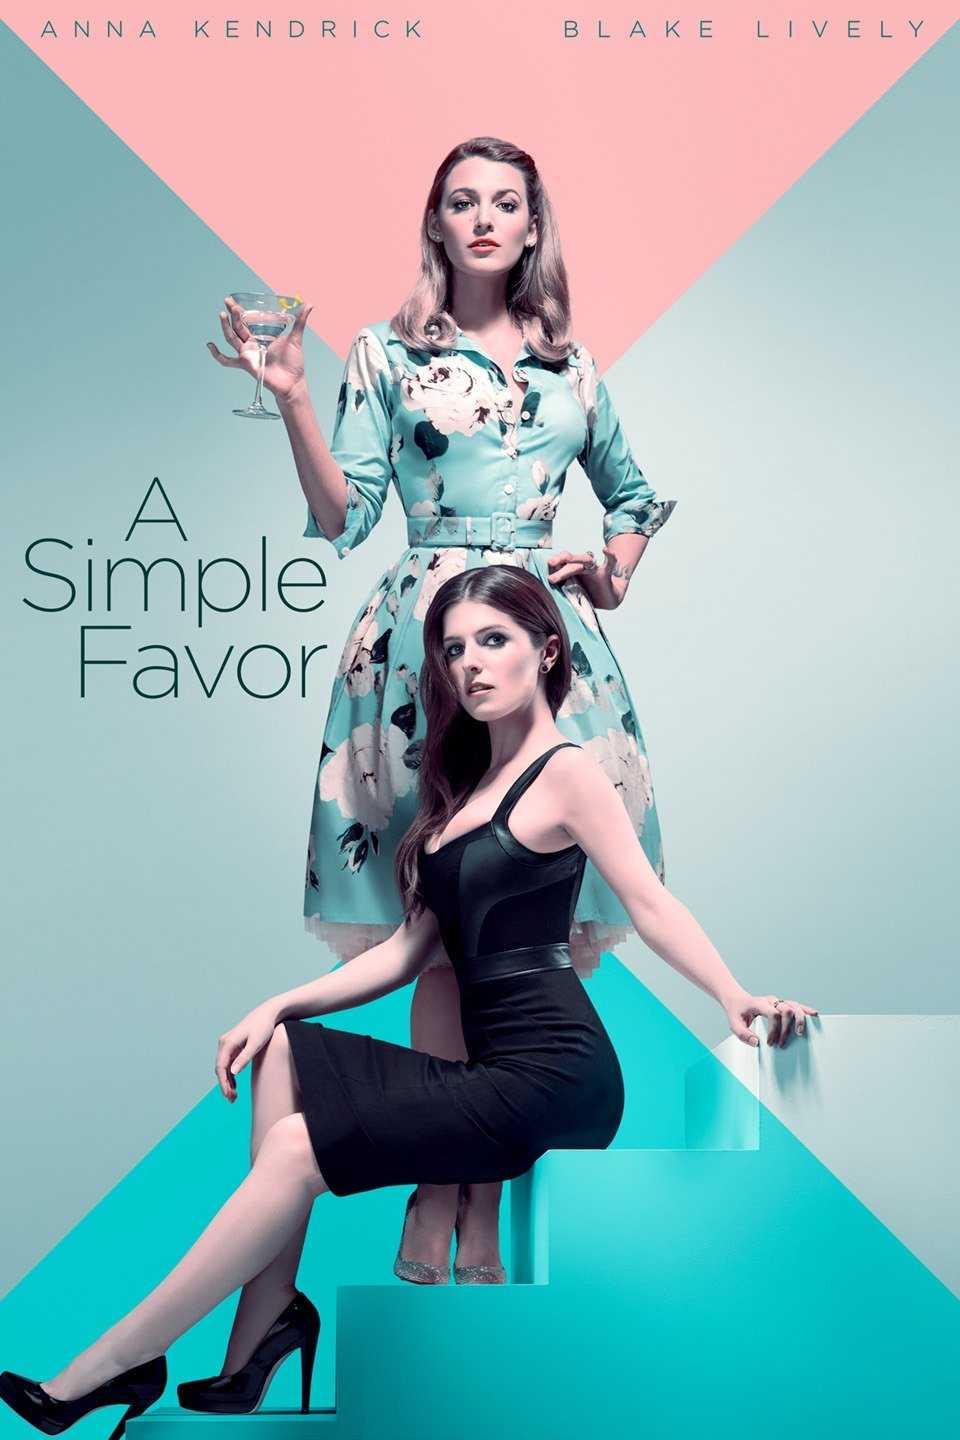 A Simple Favor_Movie Picks_Blake Lively and Anna Kendrick.jpg